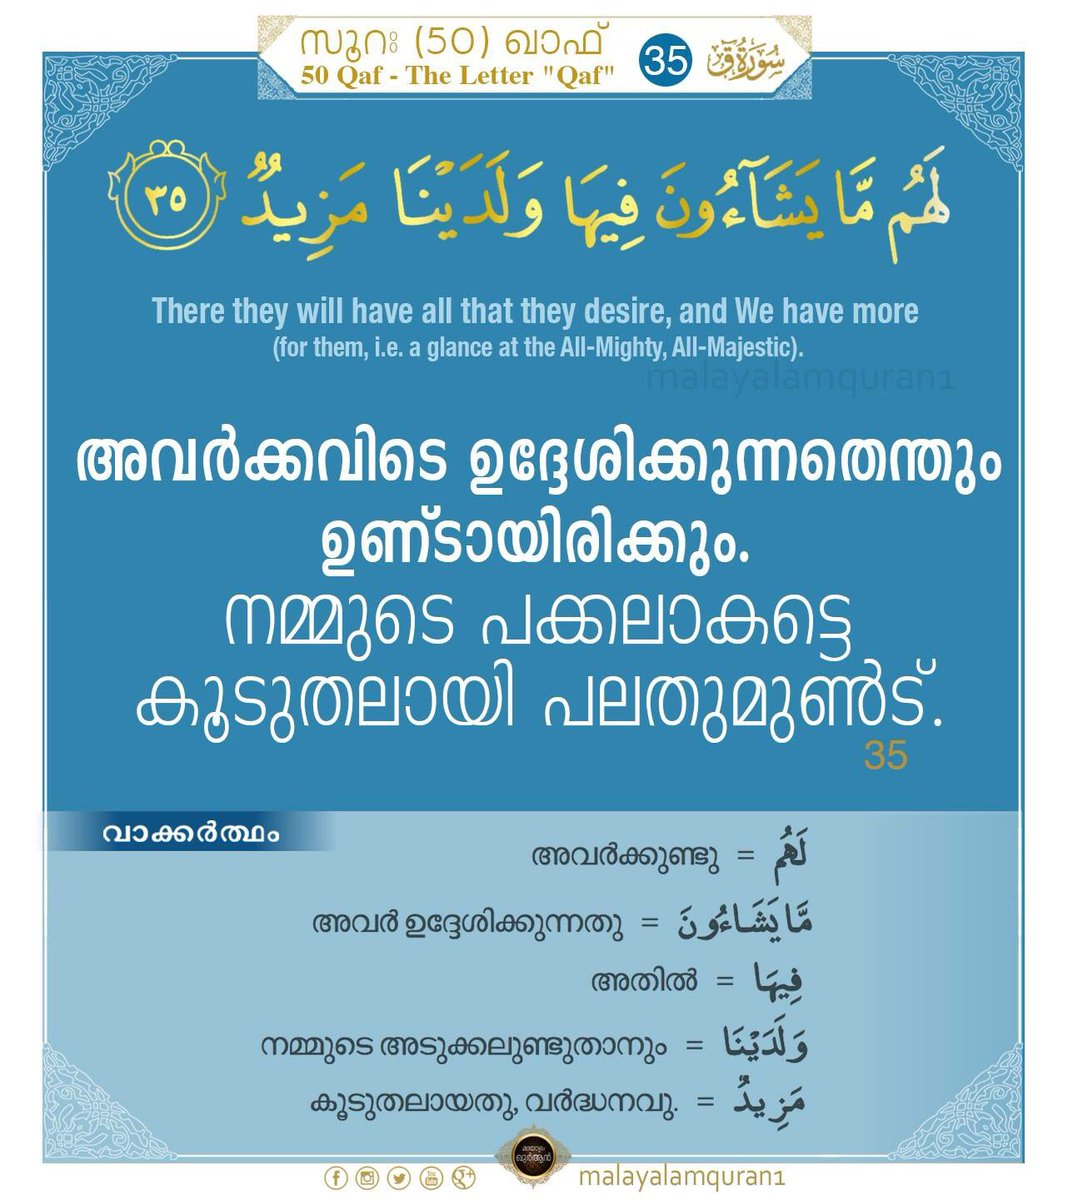 Malayalam Quran On Twitter Quran Malayalam Quote Quranquote Reminder Learn Islam Quote